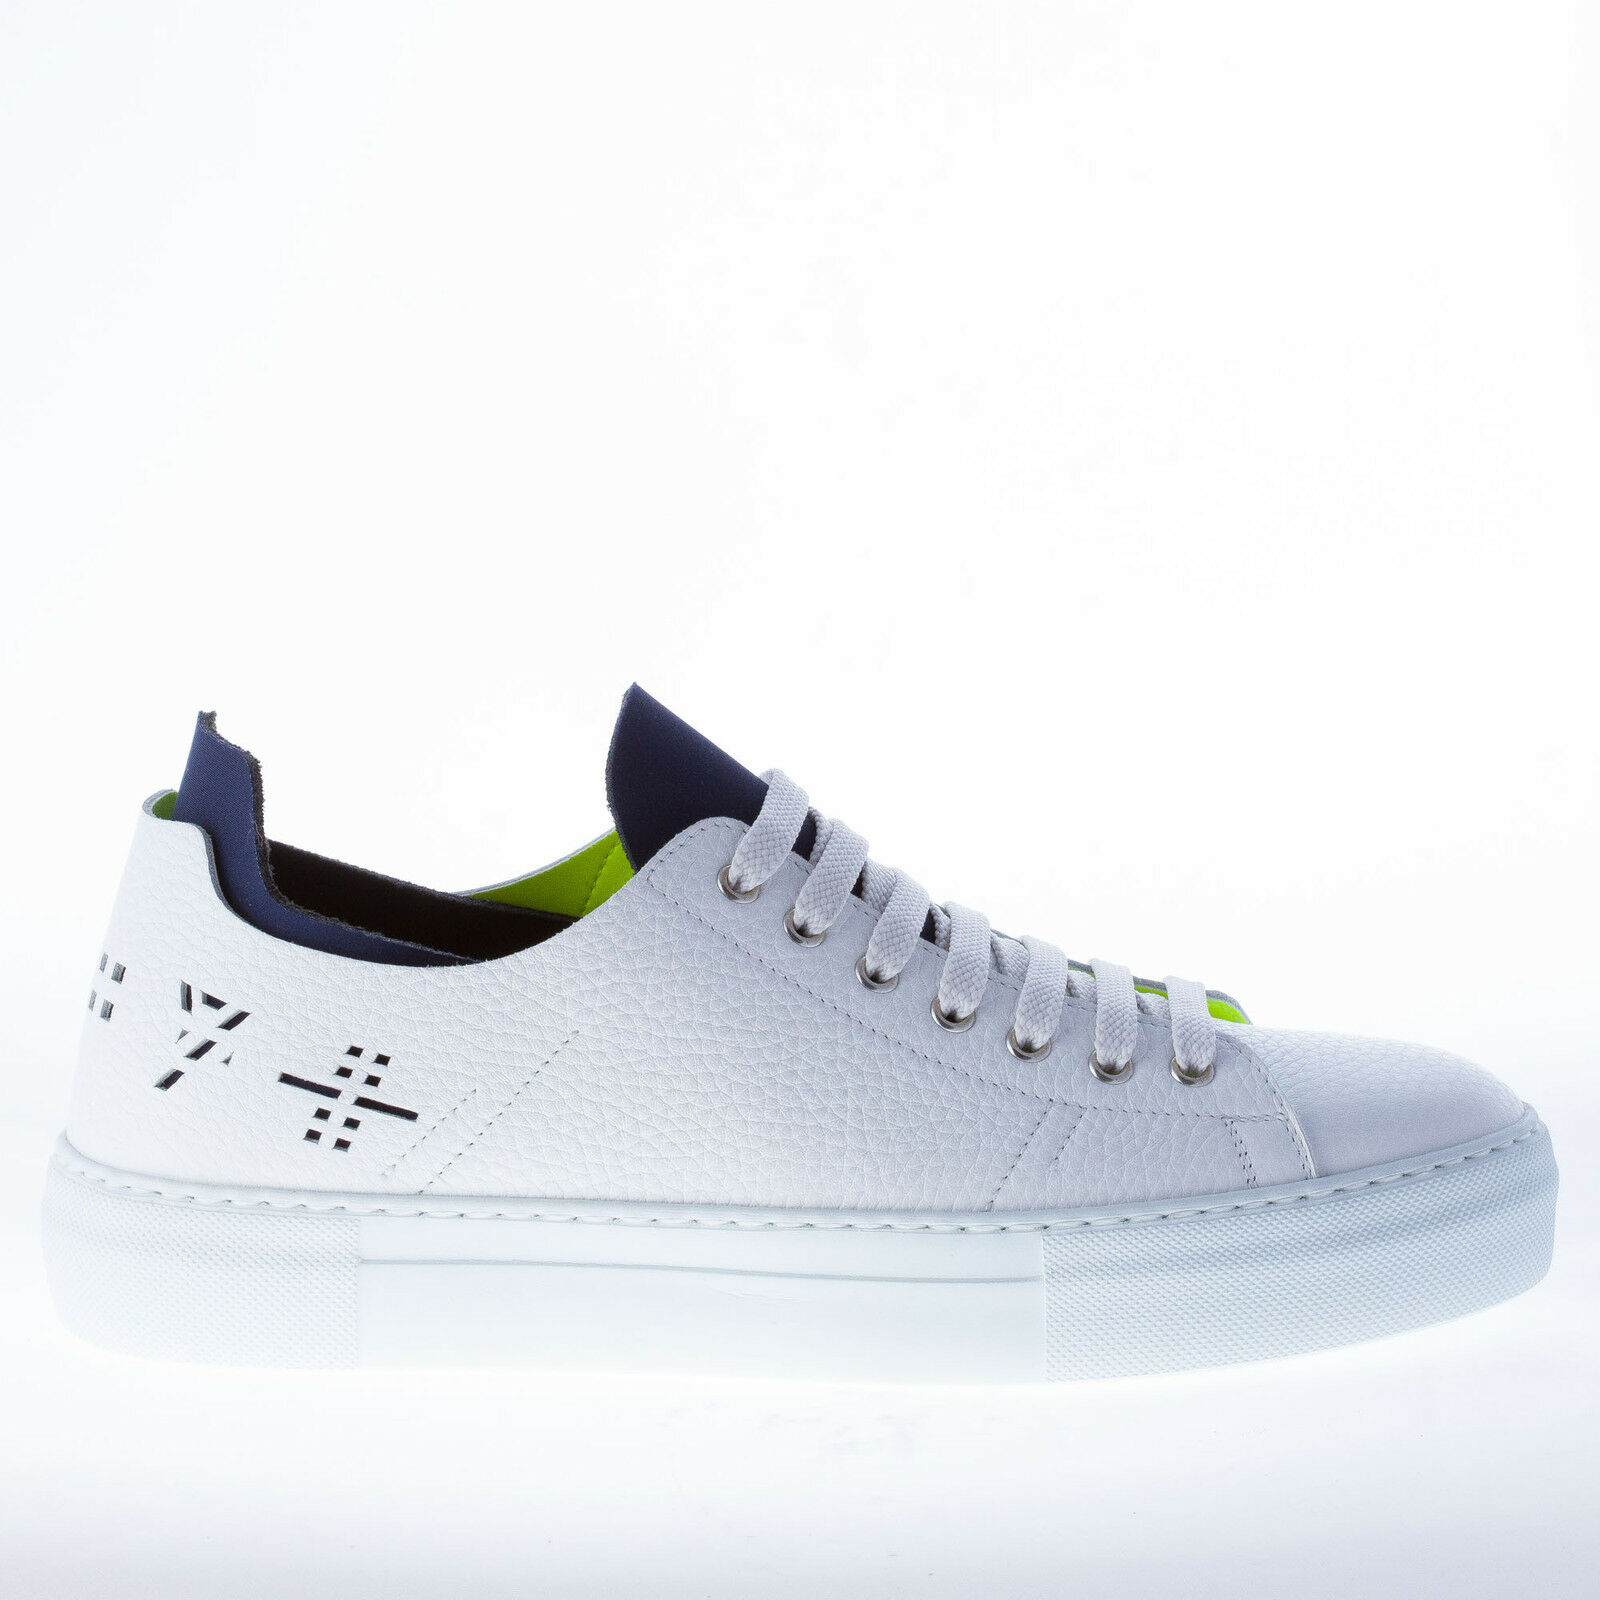 STRIKE FIRENZE herren schuhe White pebbled leather sneaker with bluee insets